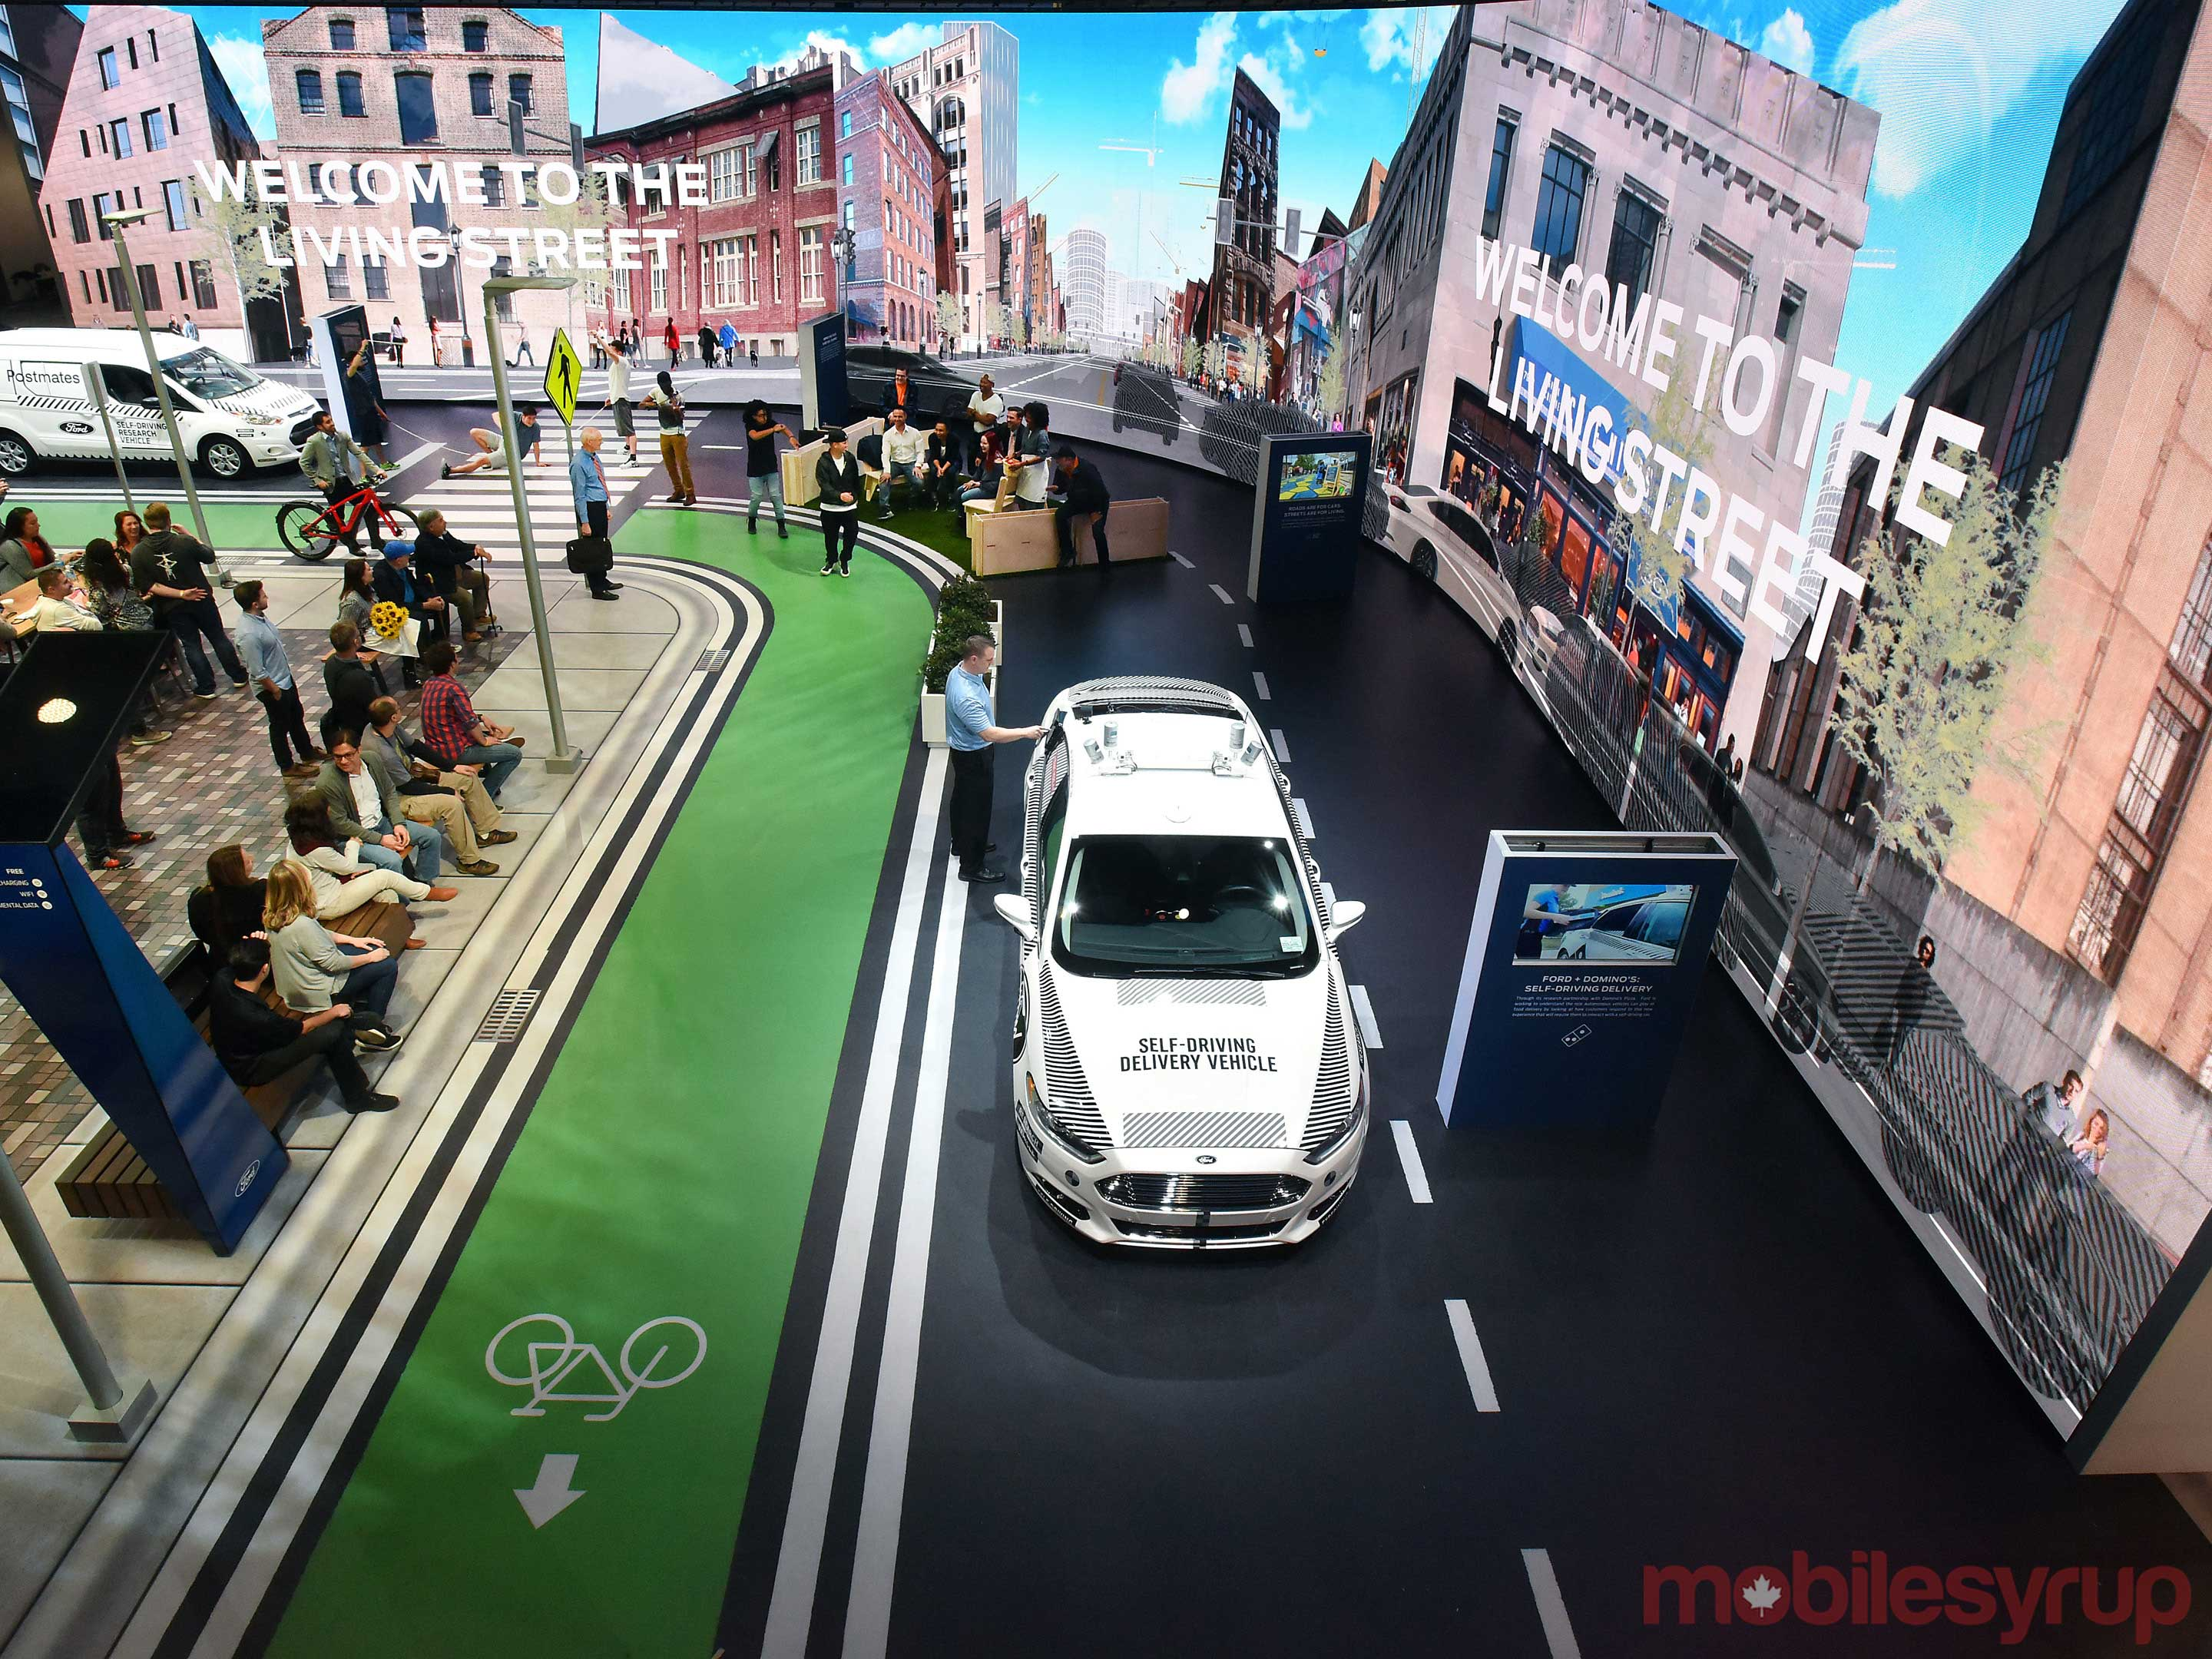 Ford at CES living street demo